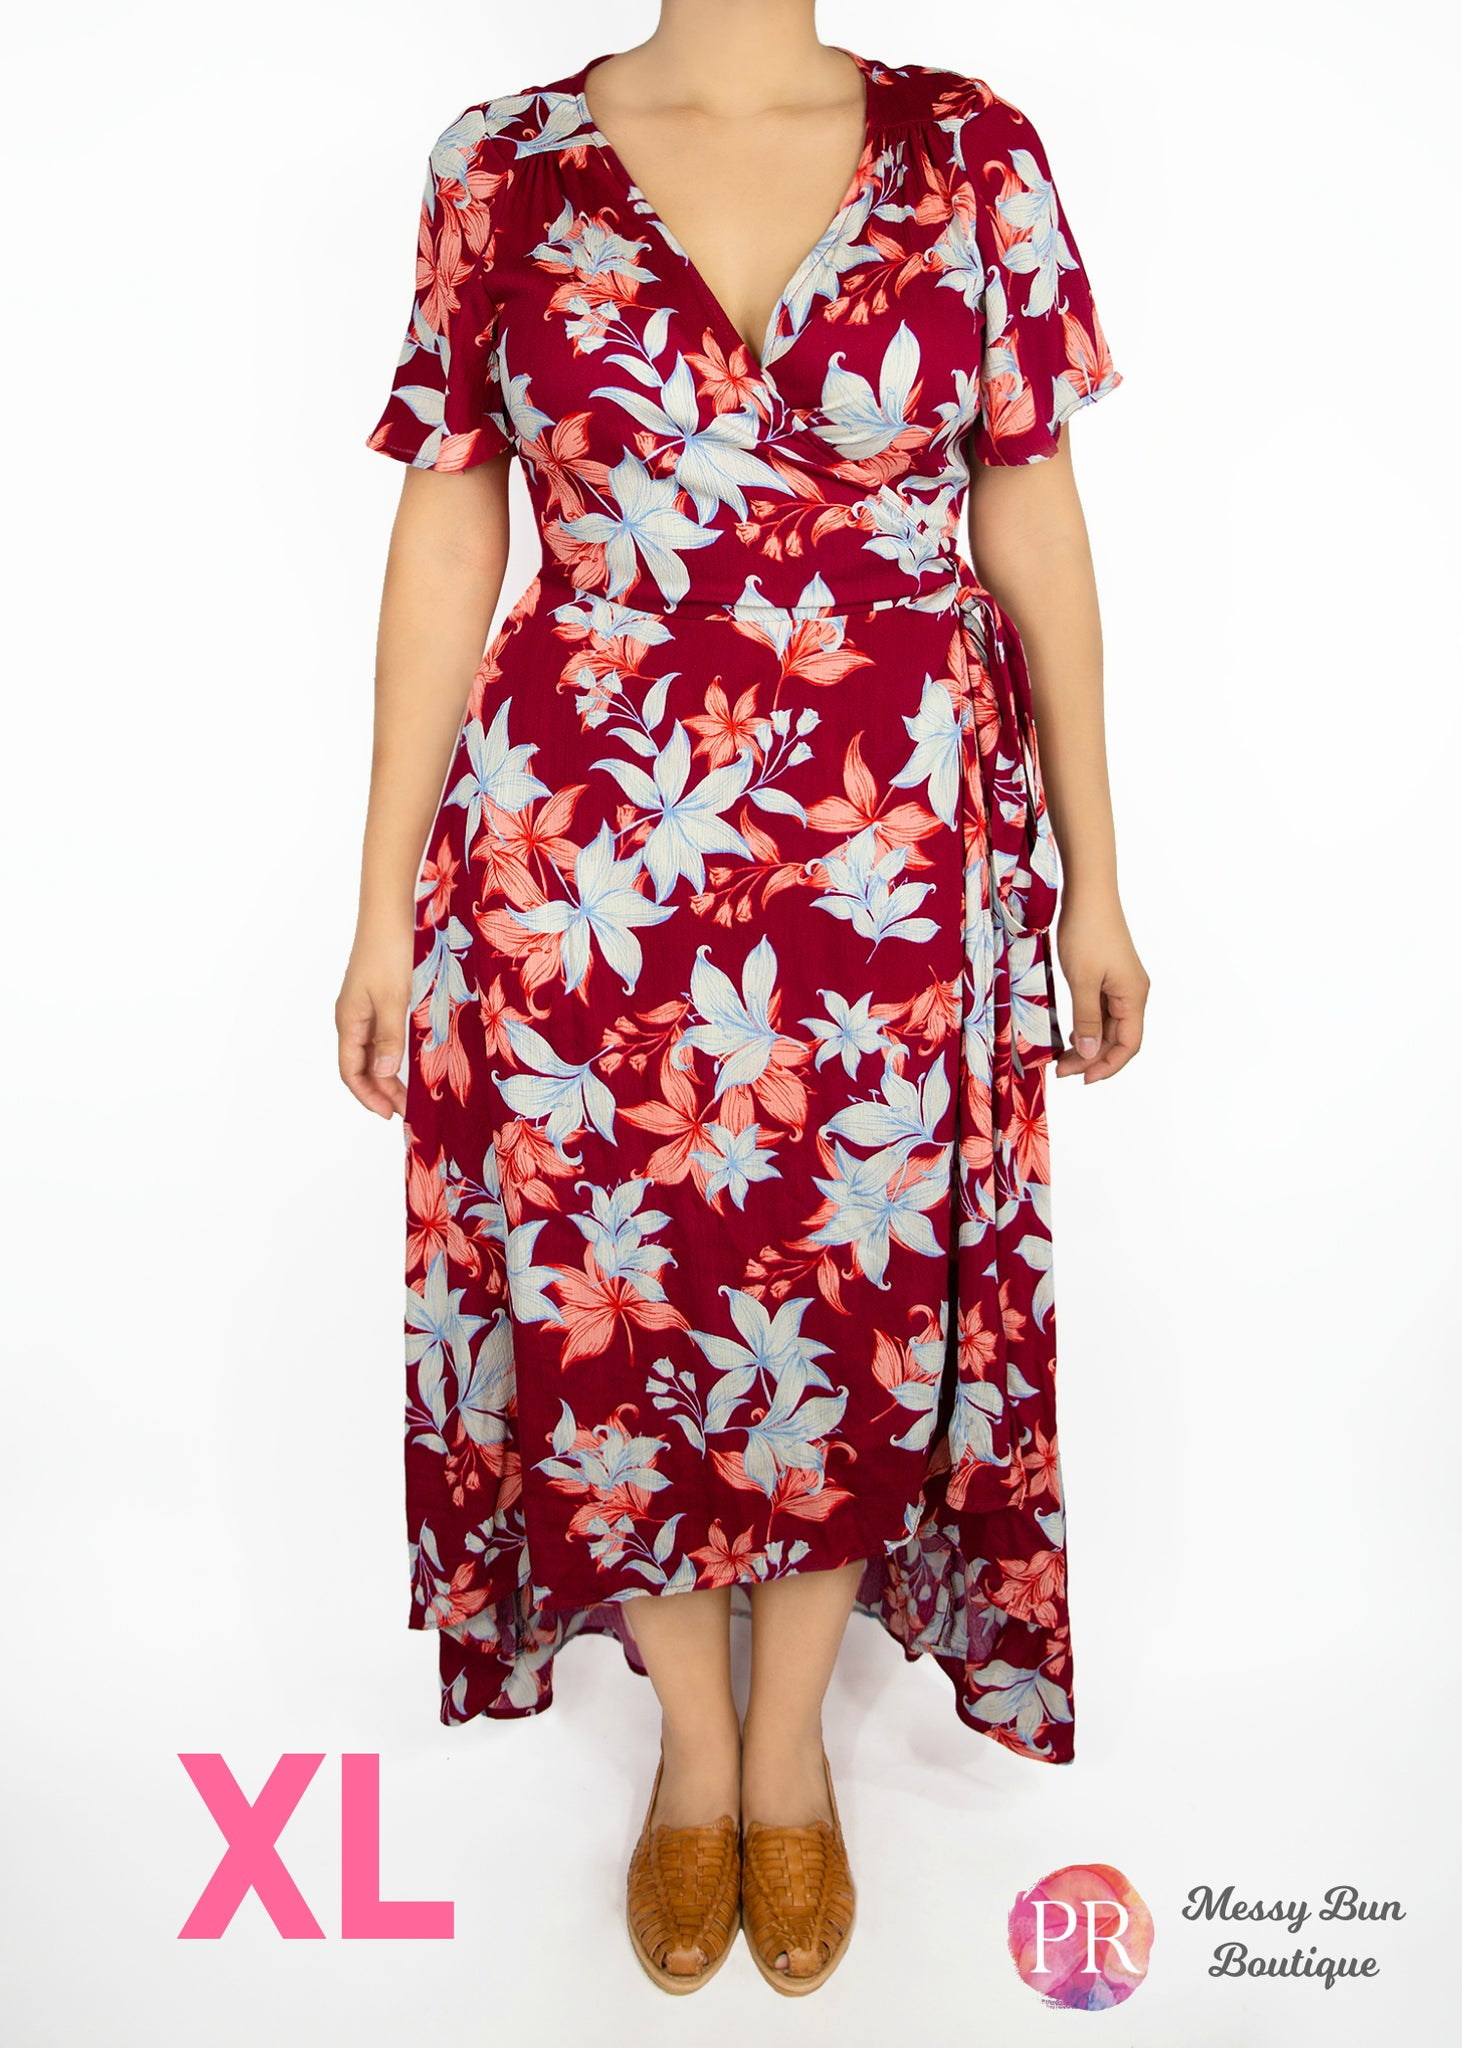 XL Rust Floral Paisley Raye Primrose Dress